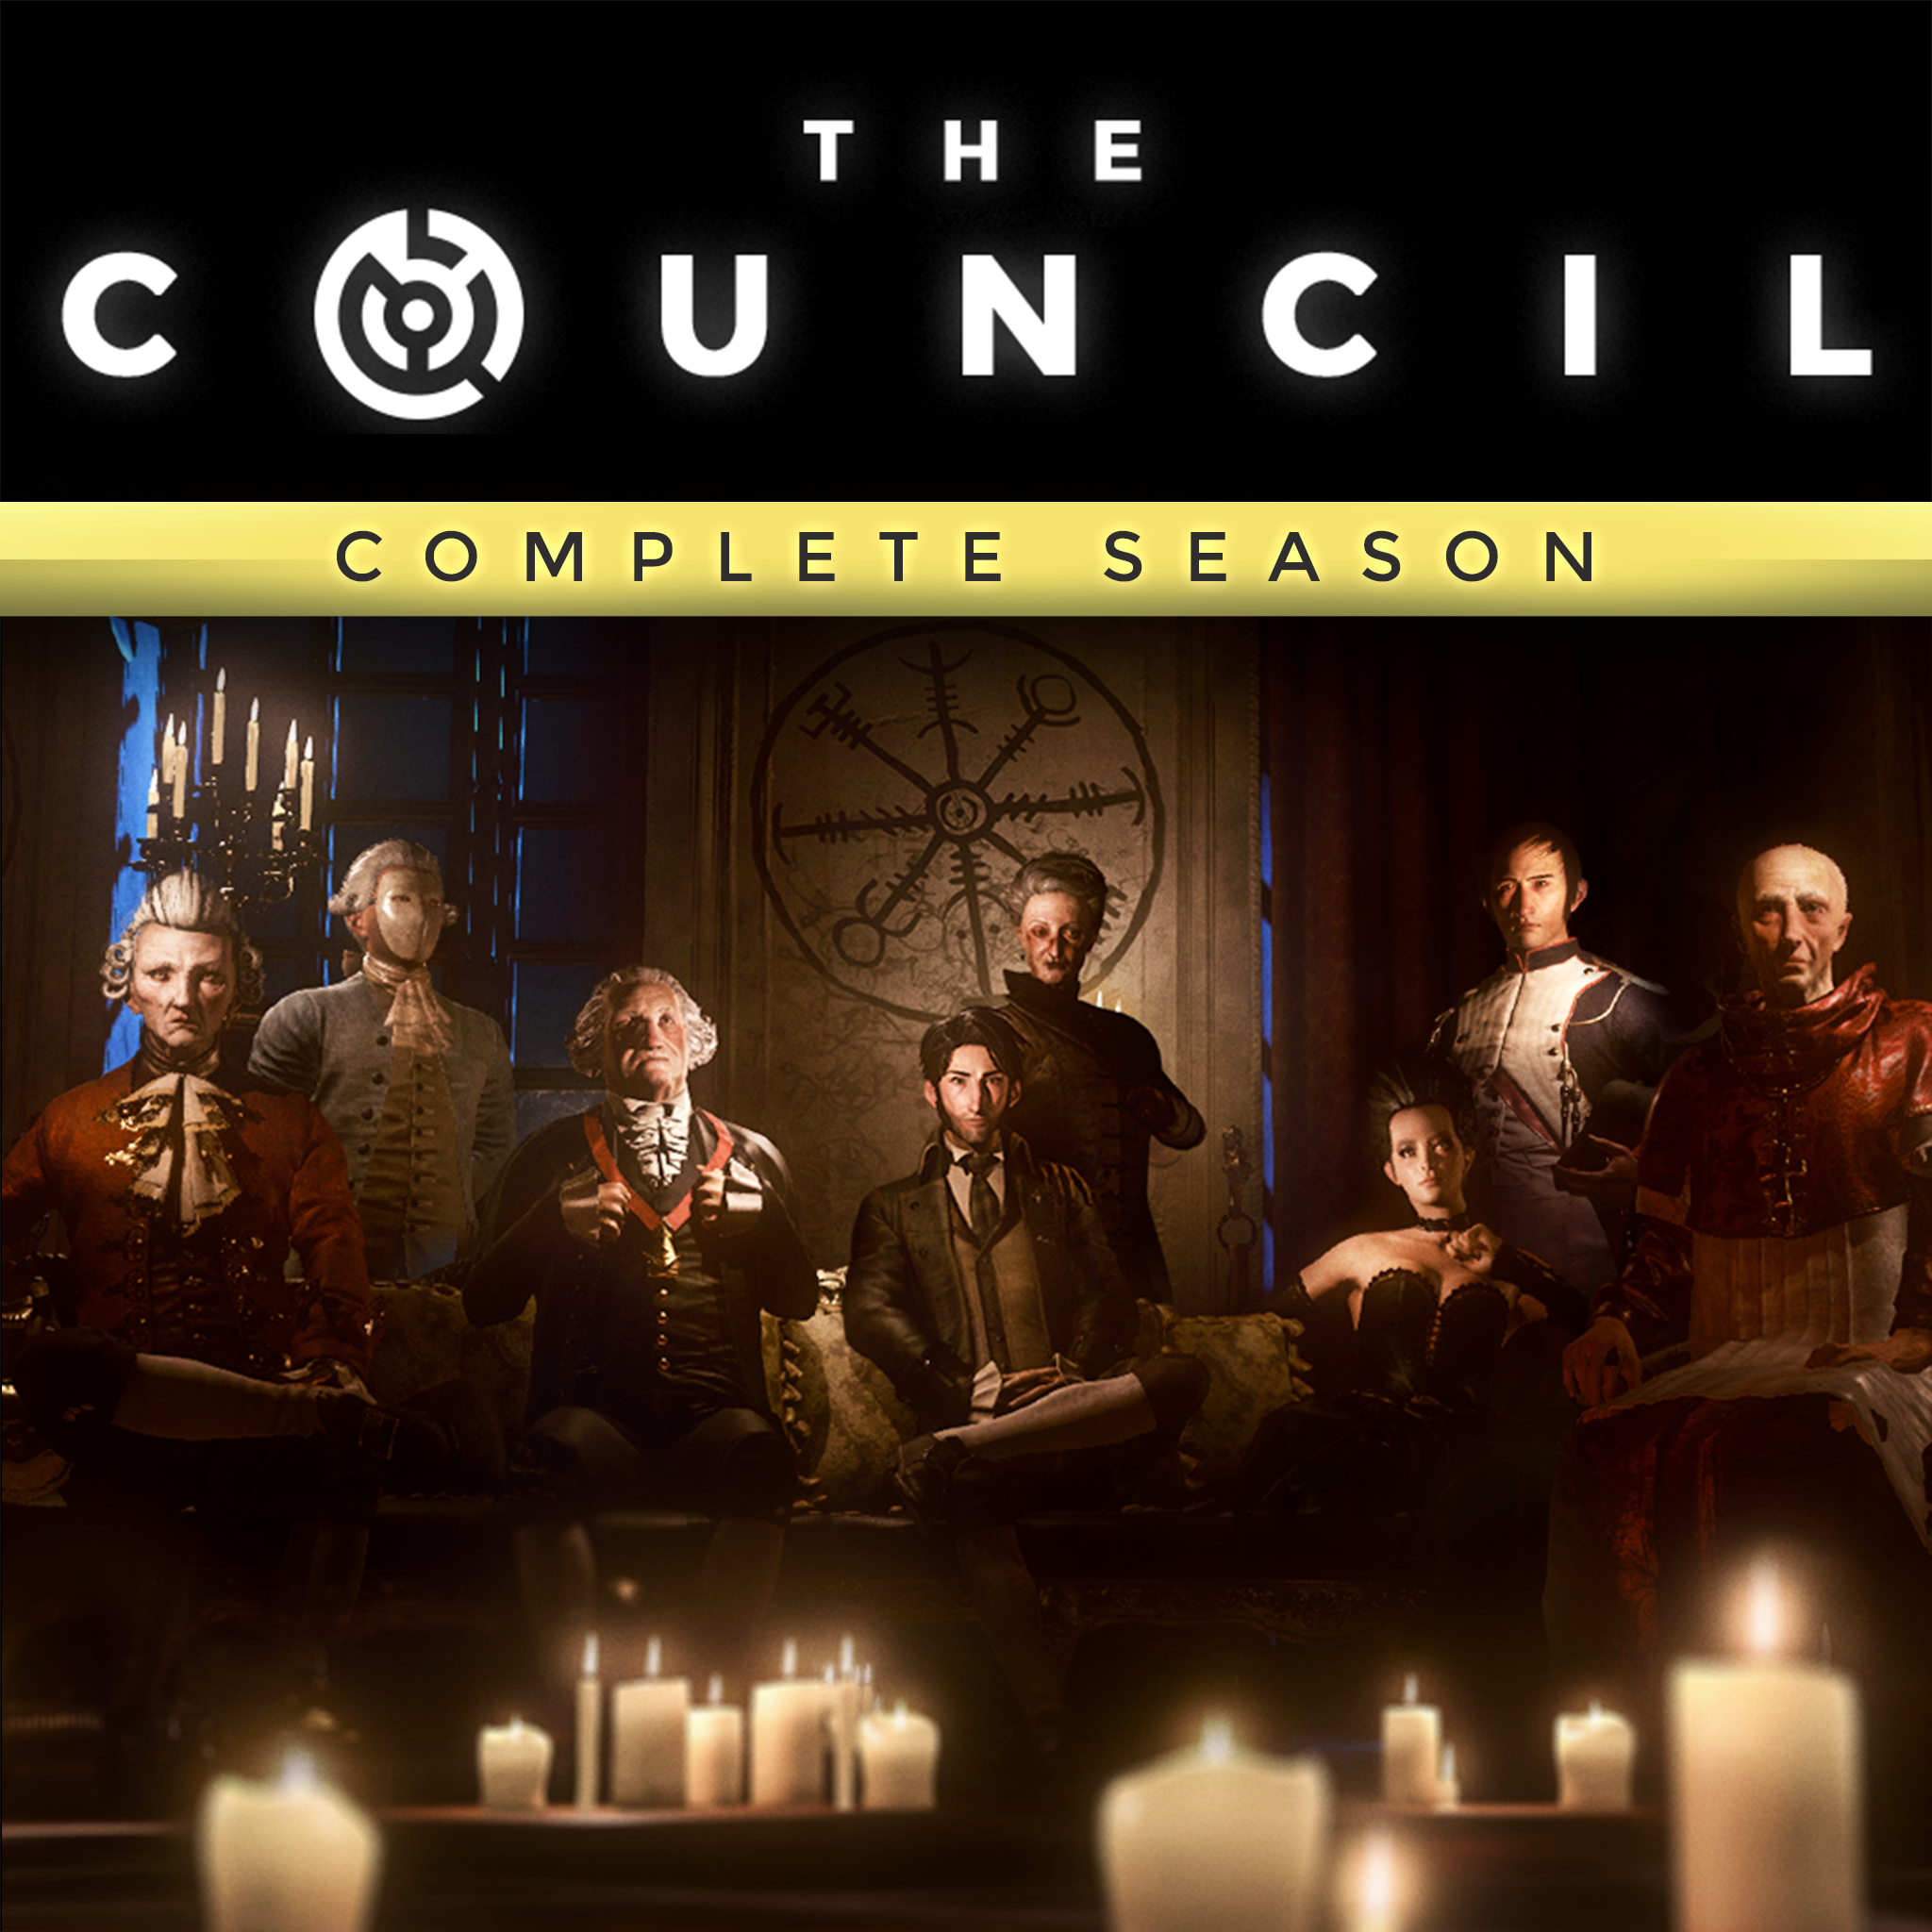 The Council - The Complete Season